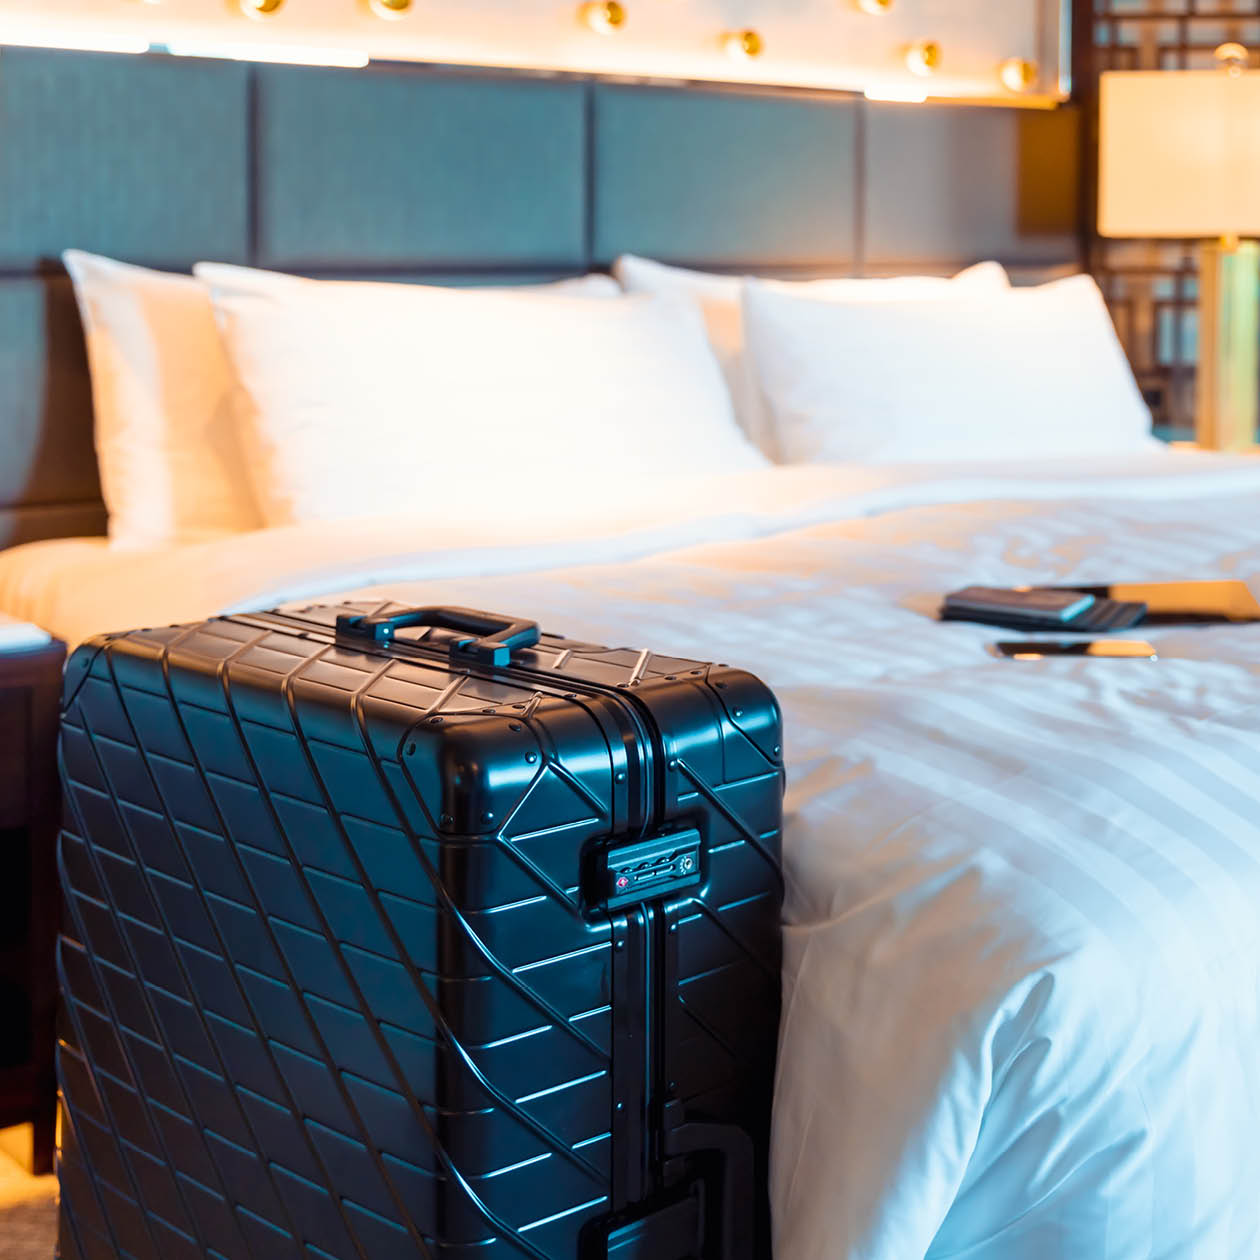 Hotels: Sleeping Cleaner While on the Road